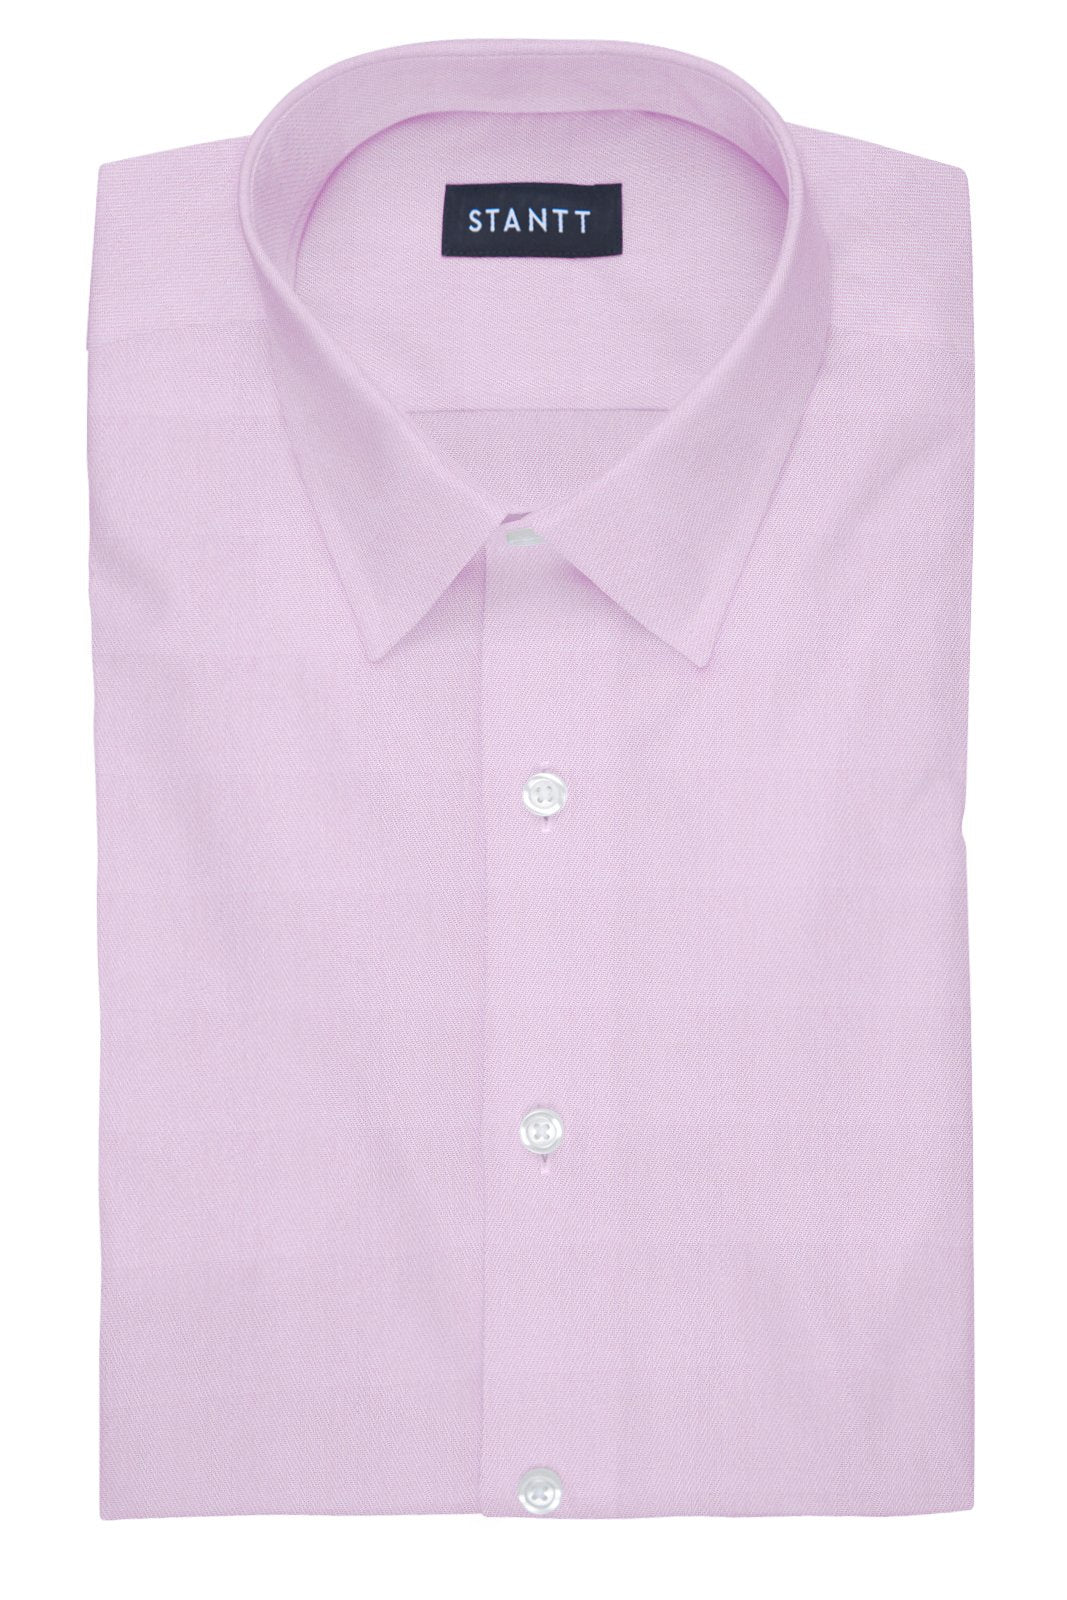 Fine Pink Twill: Semi-Spread Collar, Barrel Cuff